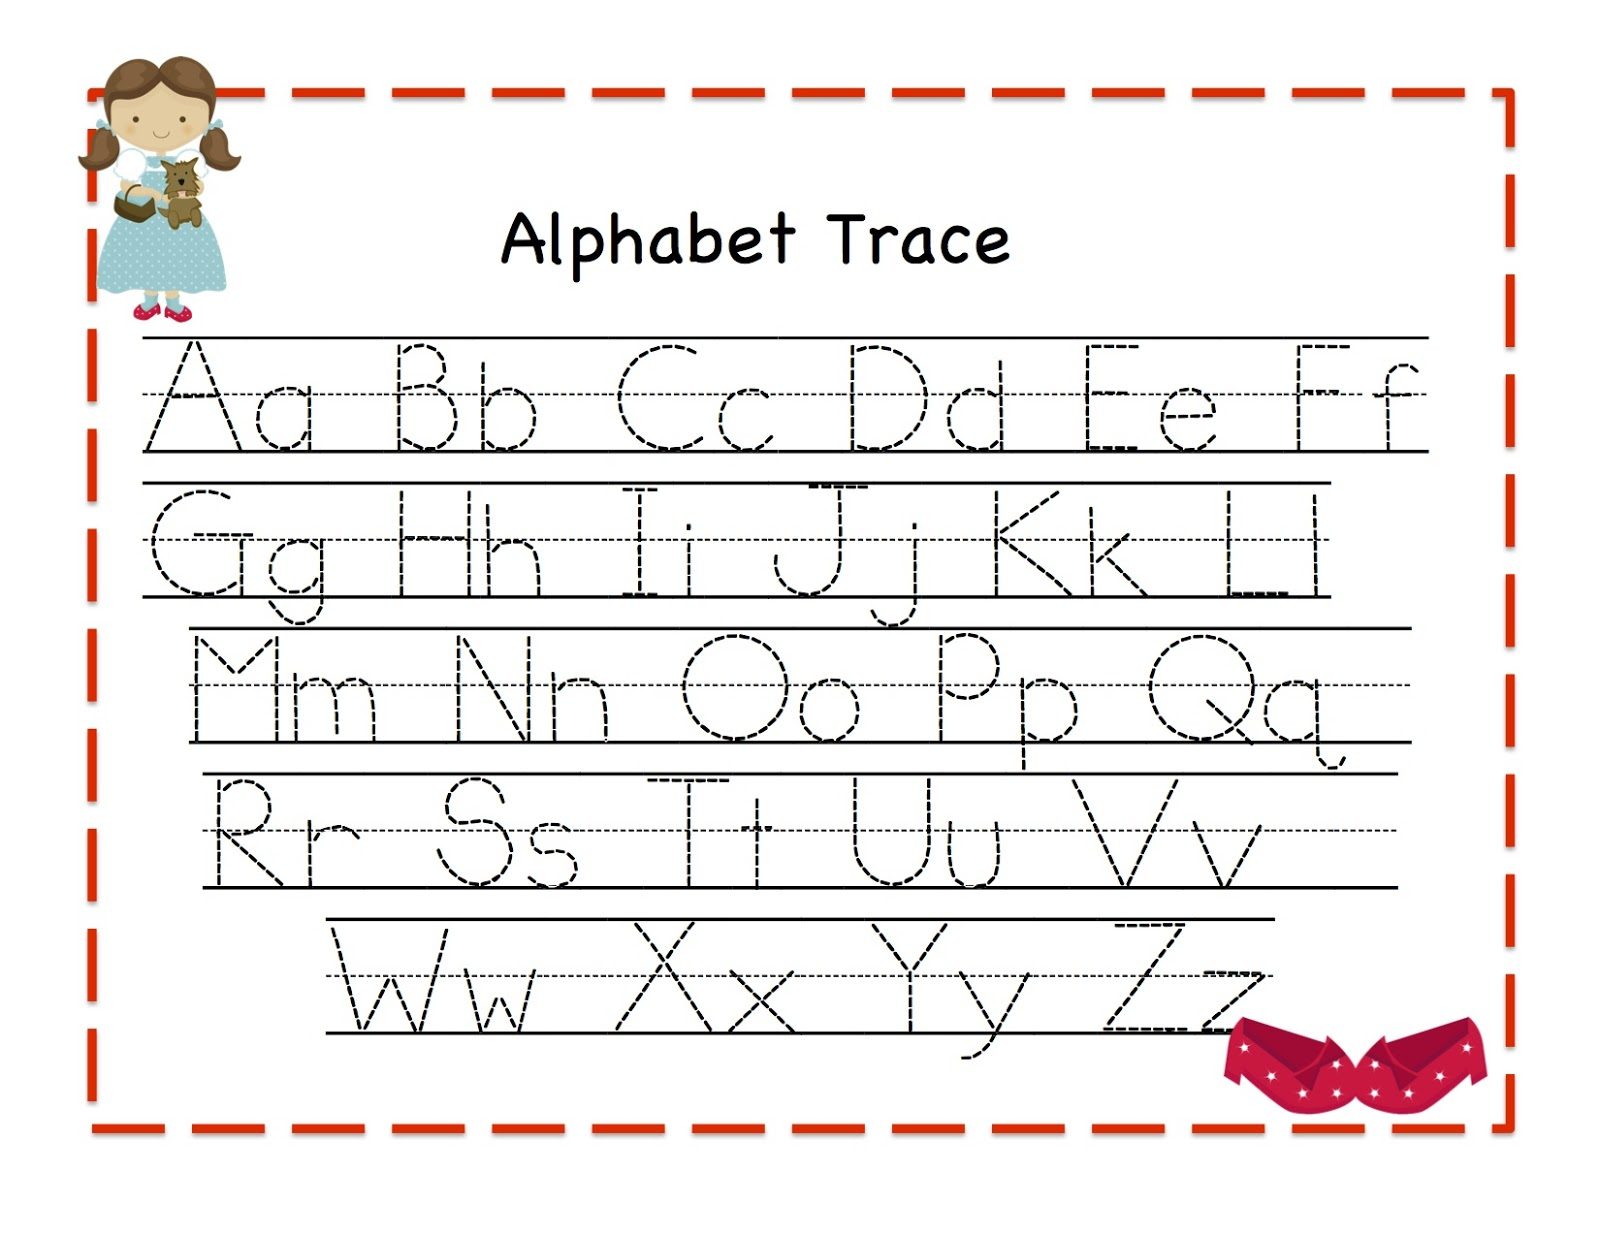 Worksheet Printable Letter Tracing alphabet tracing templates 1000 images about kids on pinterest new calendar template site